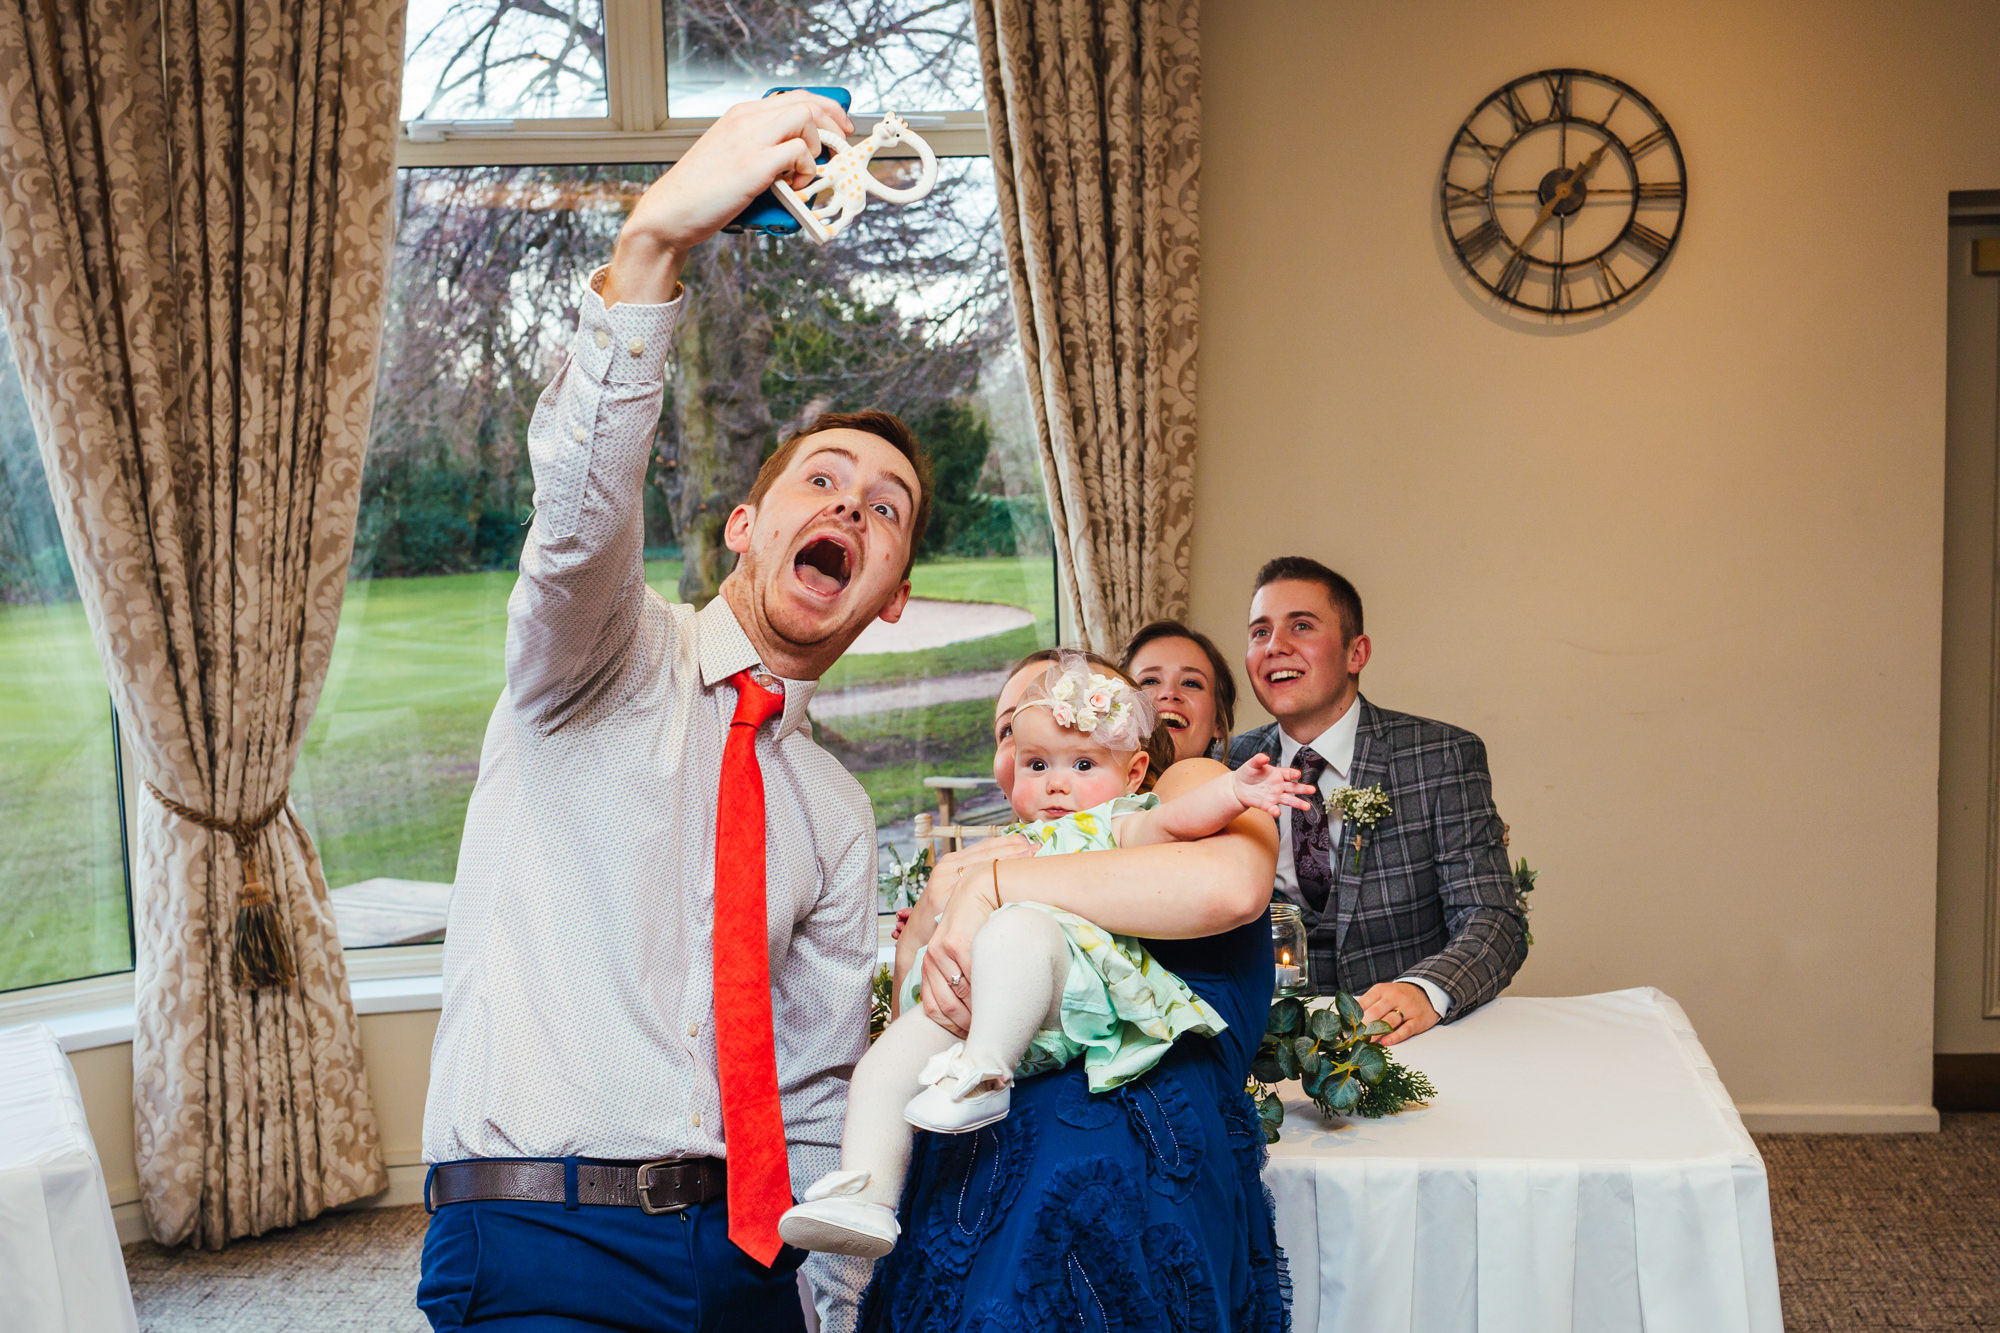 Wedding Photography Nottingham - Couple taking selfie with baby in front of bride and groom during ceremony